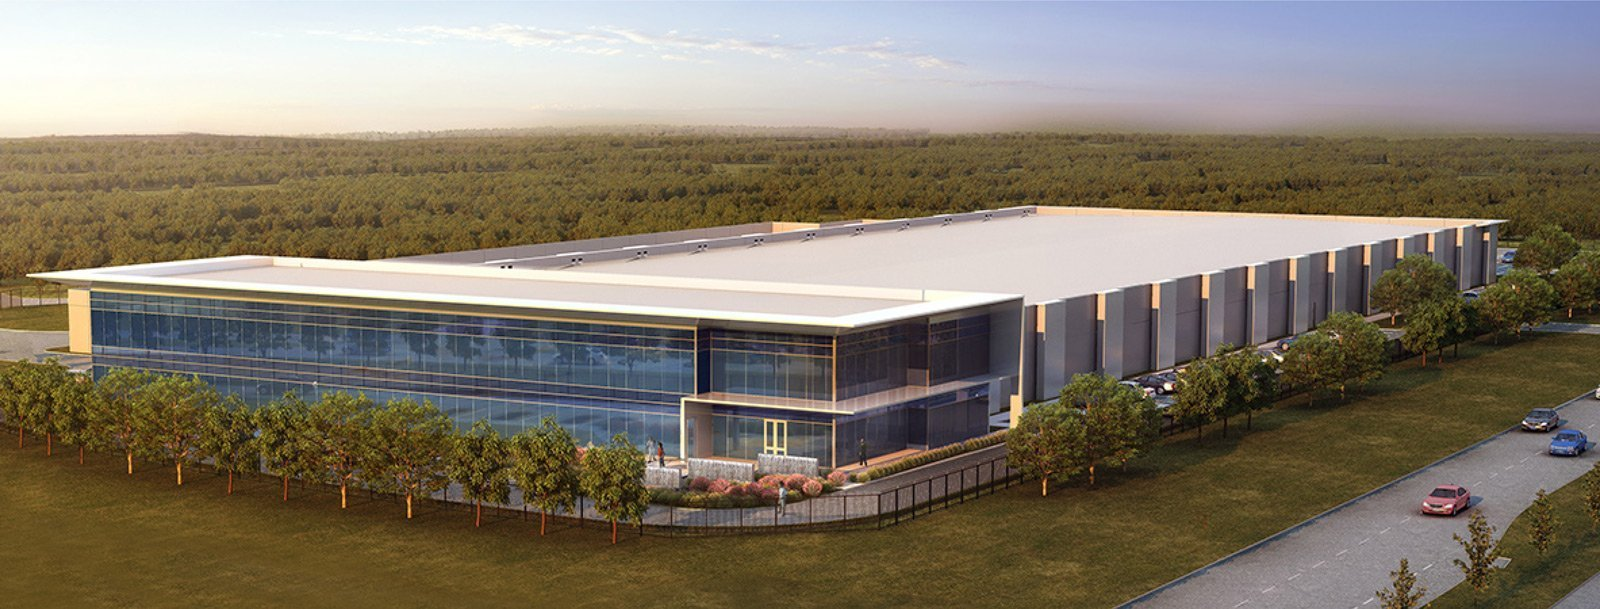 Stream Data Centers Announces New Dallas-Area Hyperscale Data Center Development